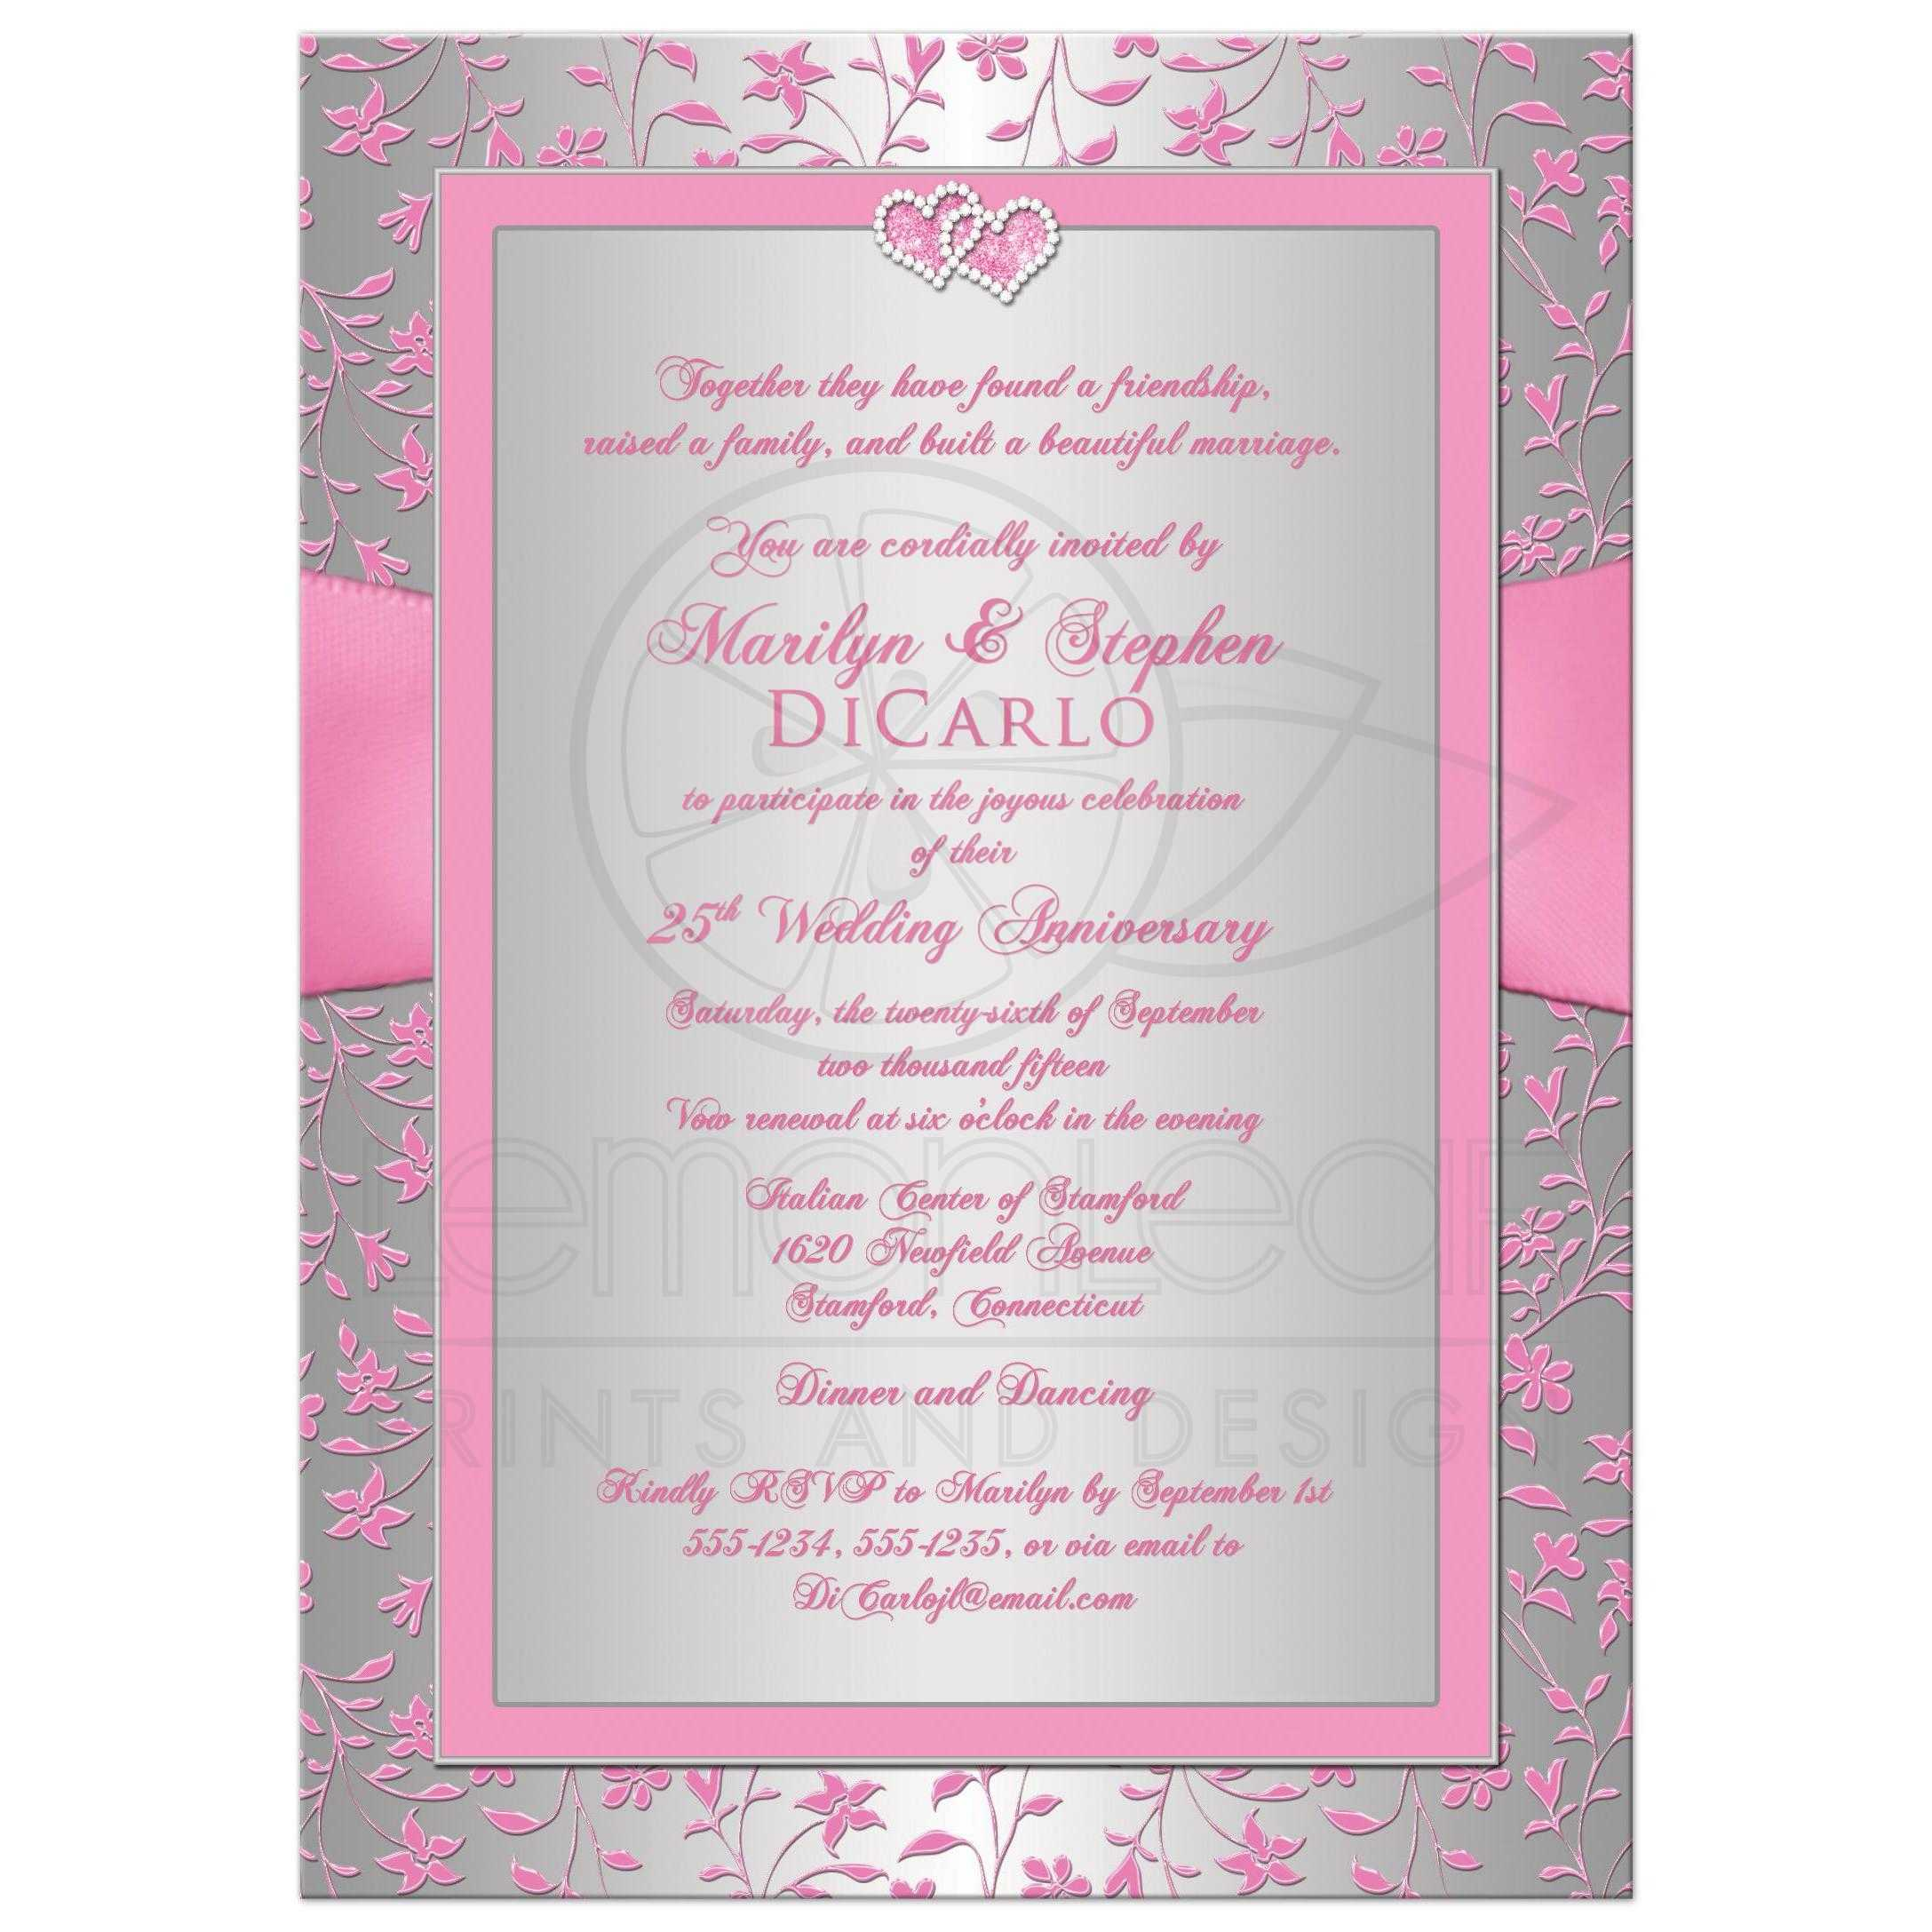 25th Wedding Anniversary Invite | Pink, Silver Floral | Joined ...